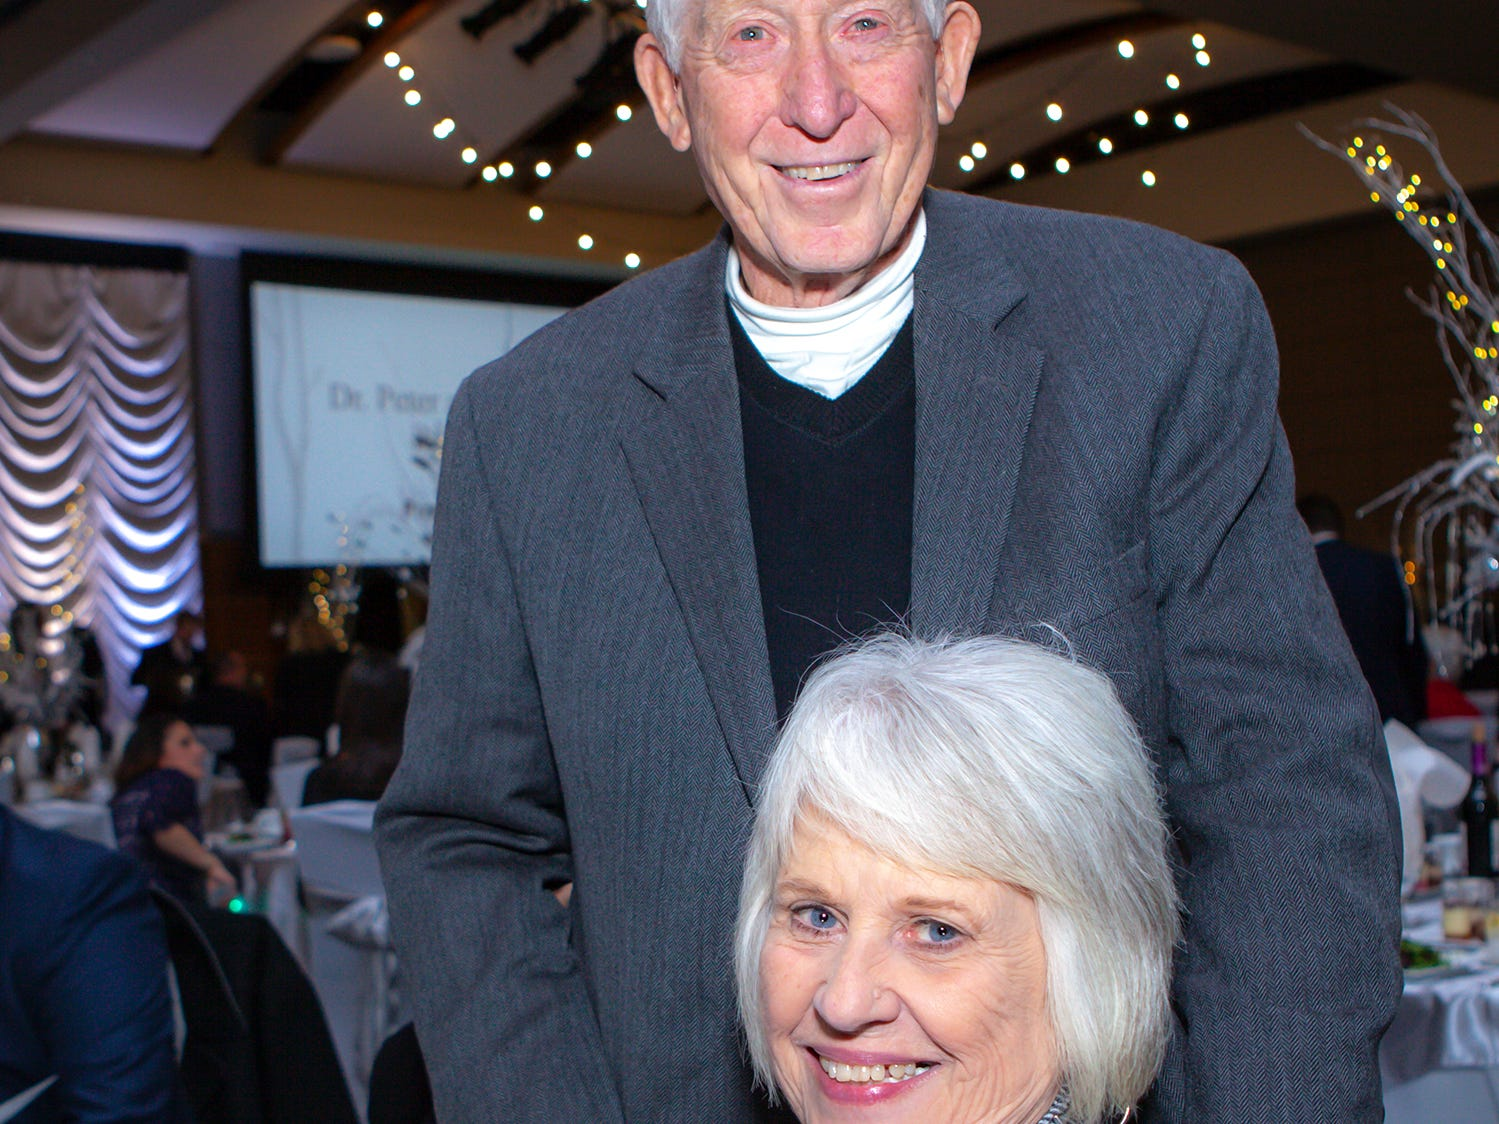 Cliff and Jane Sharp at the 2019 Excellence in Education Gala, hosted by the City Schools Foundation on Friday, Jan. 25, 2019 at Stones River Country Club in Murfreesboro